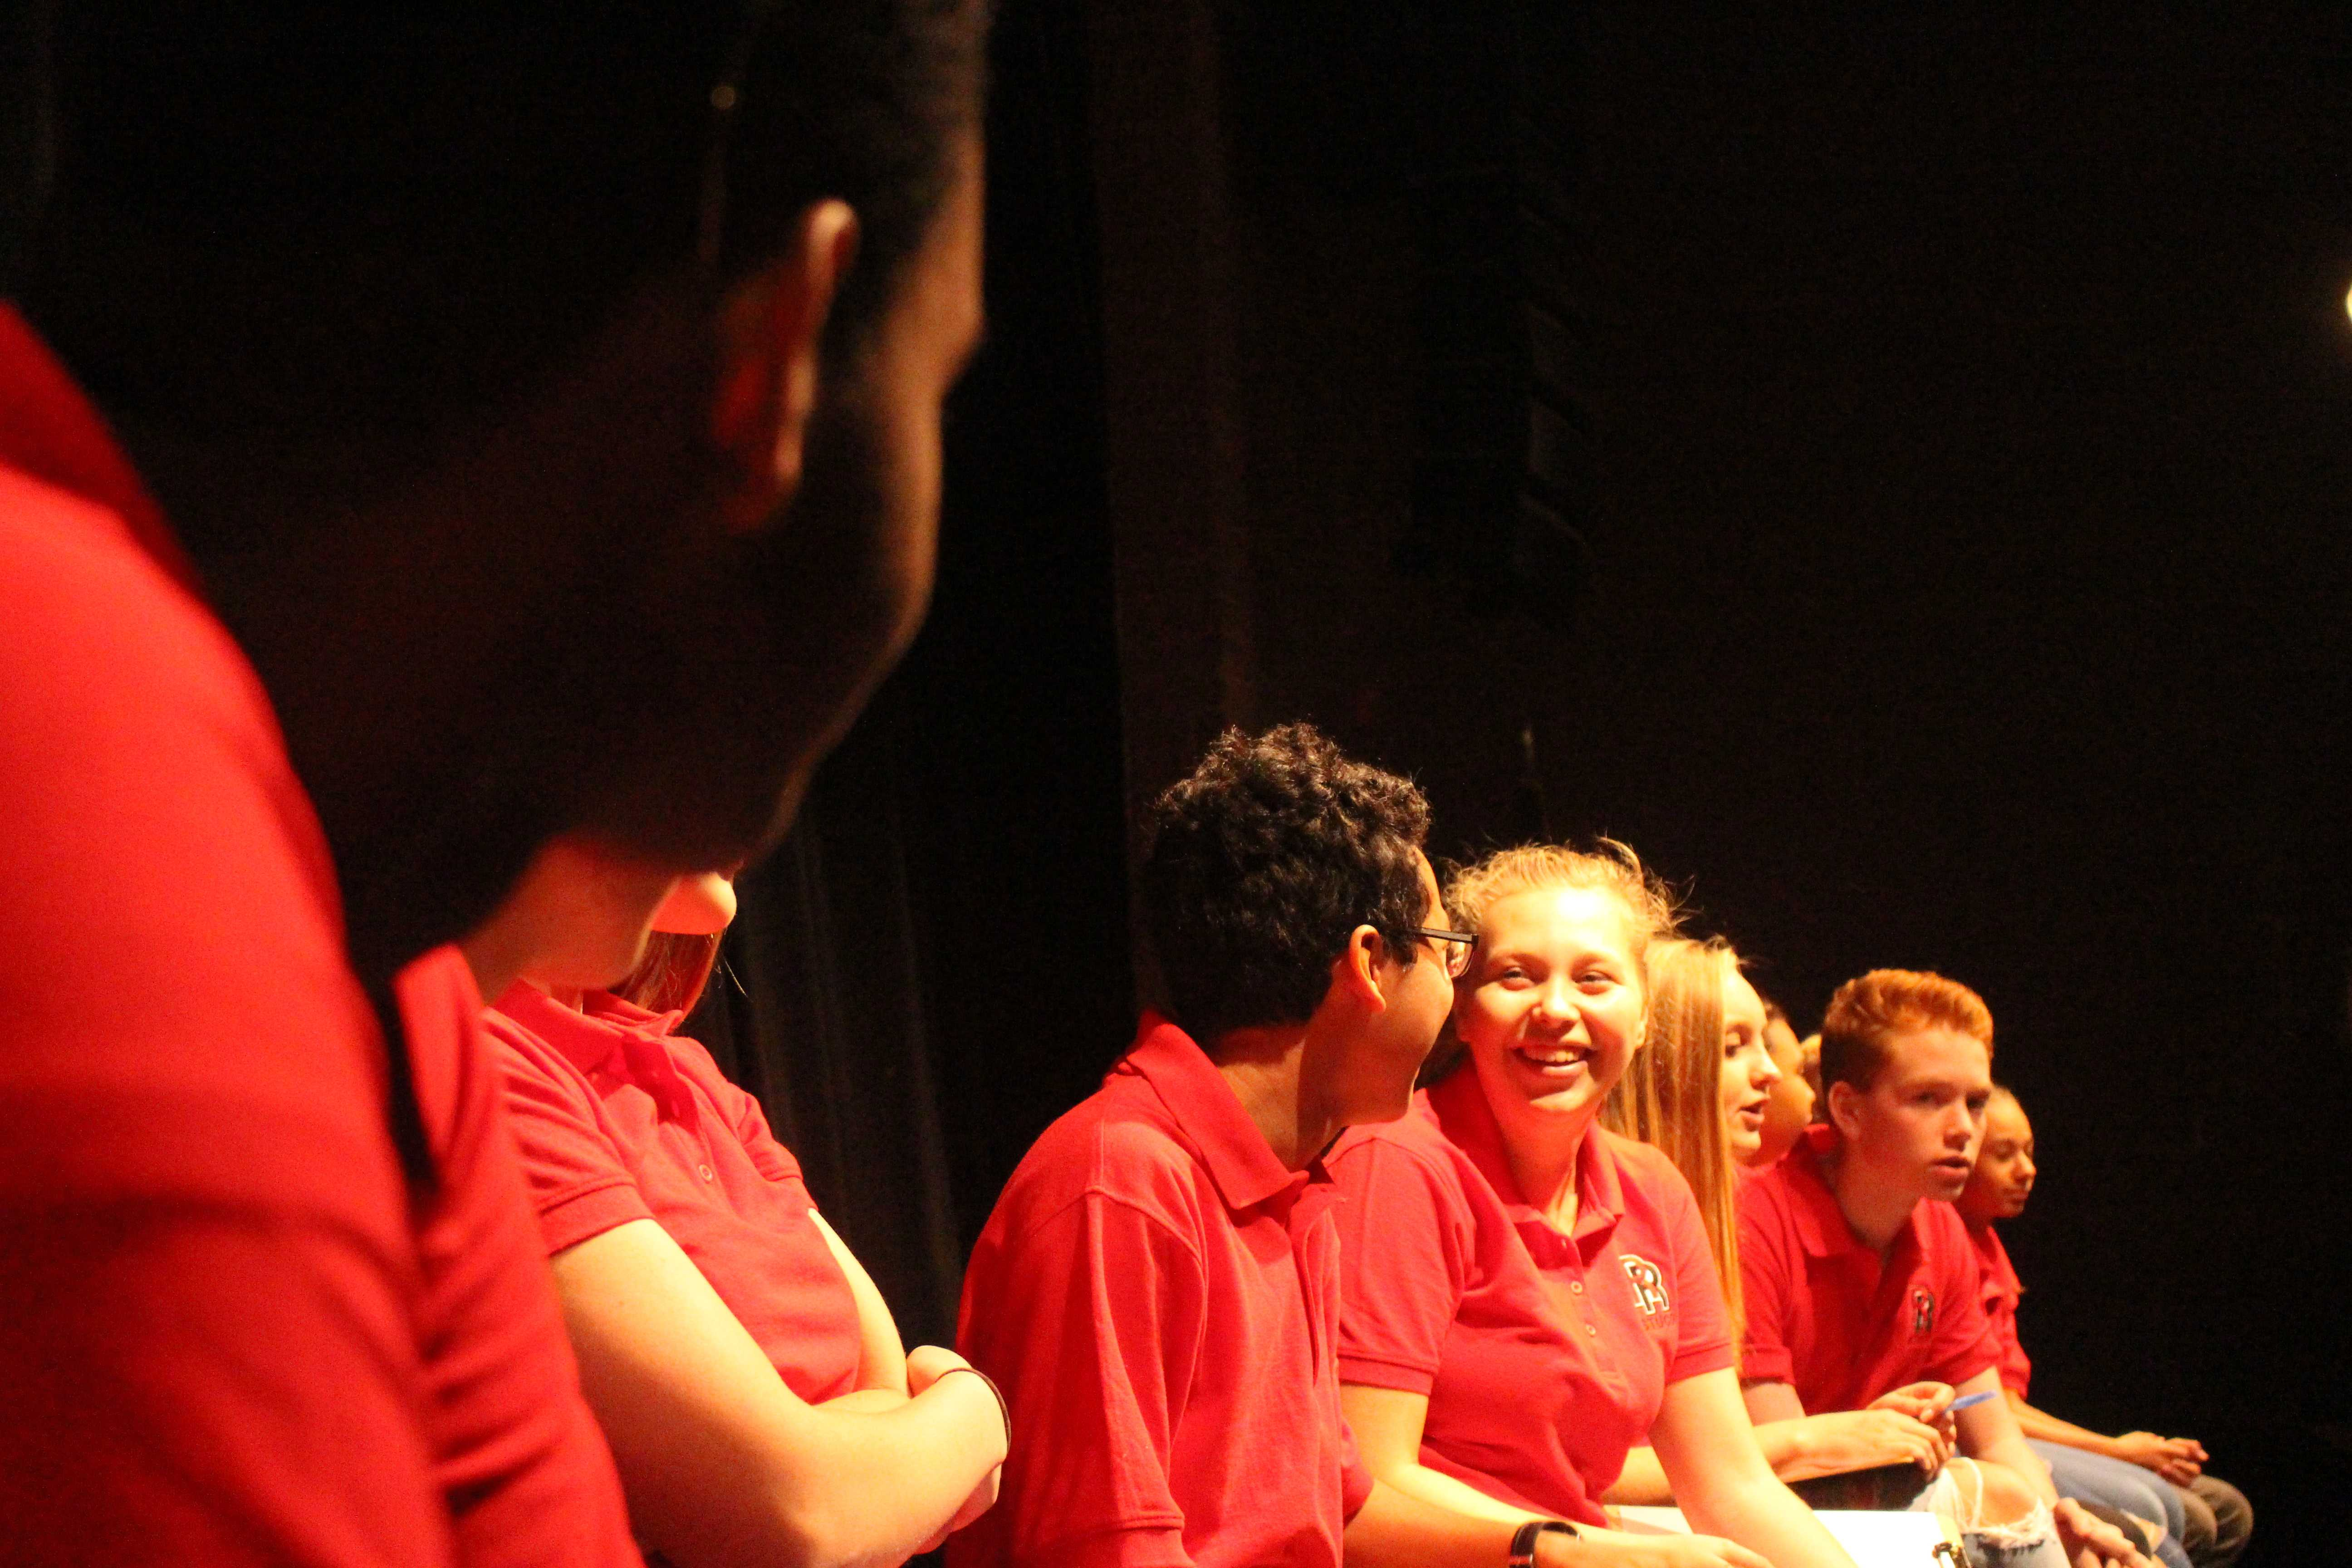 Addressing student voice in STUCO's first forum